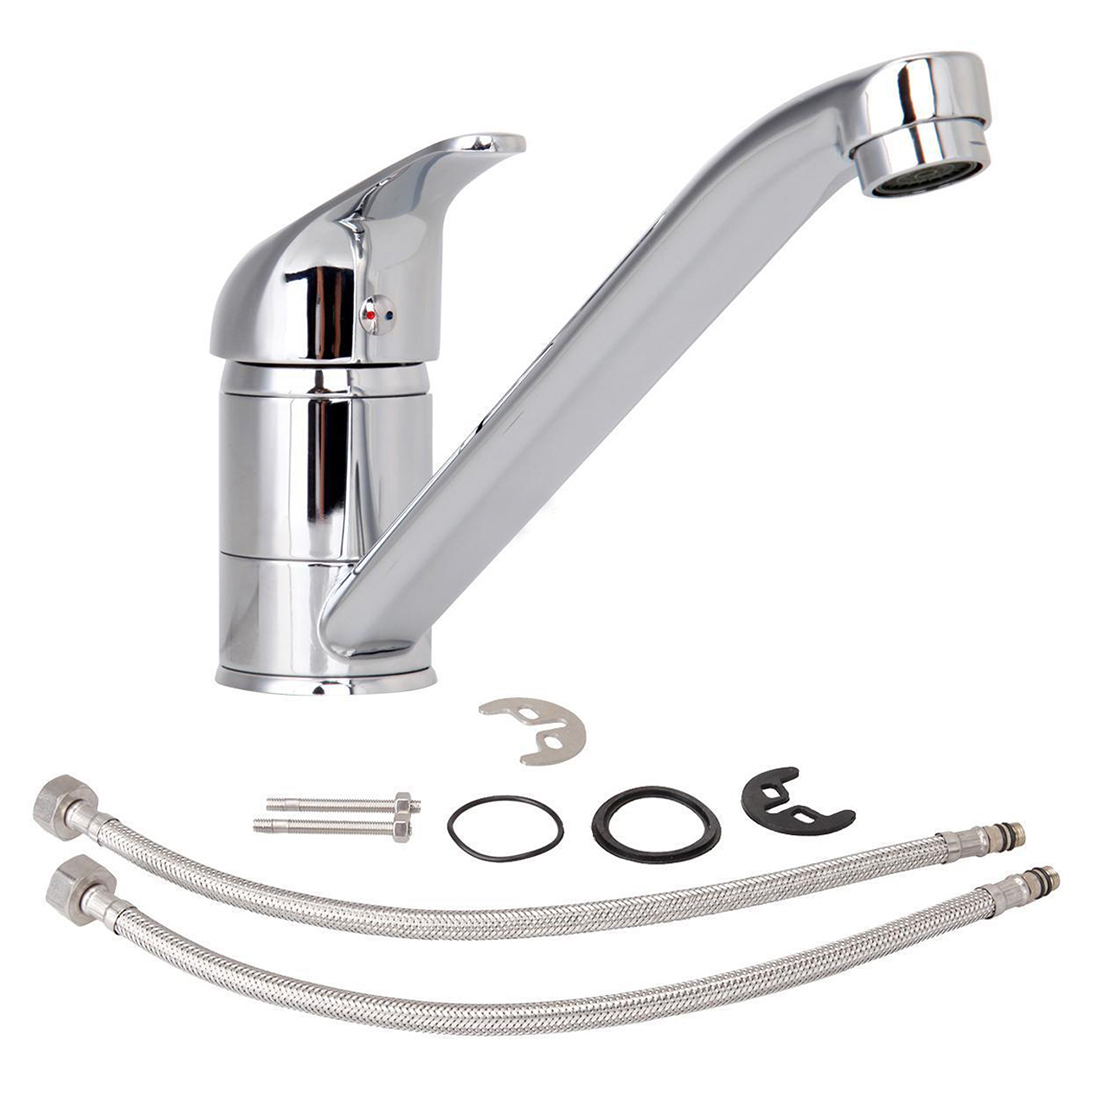 Kitchen Faucet Bathroom Waterfall Faucet Wash Basin Faucet Water Diffuser Chrome Plated Kitchen Mixer Tap Ith 40cm Braided Hoses